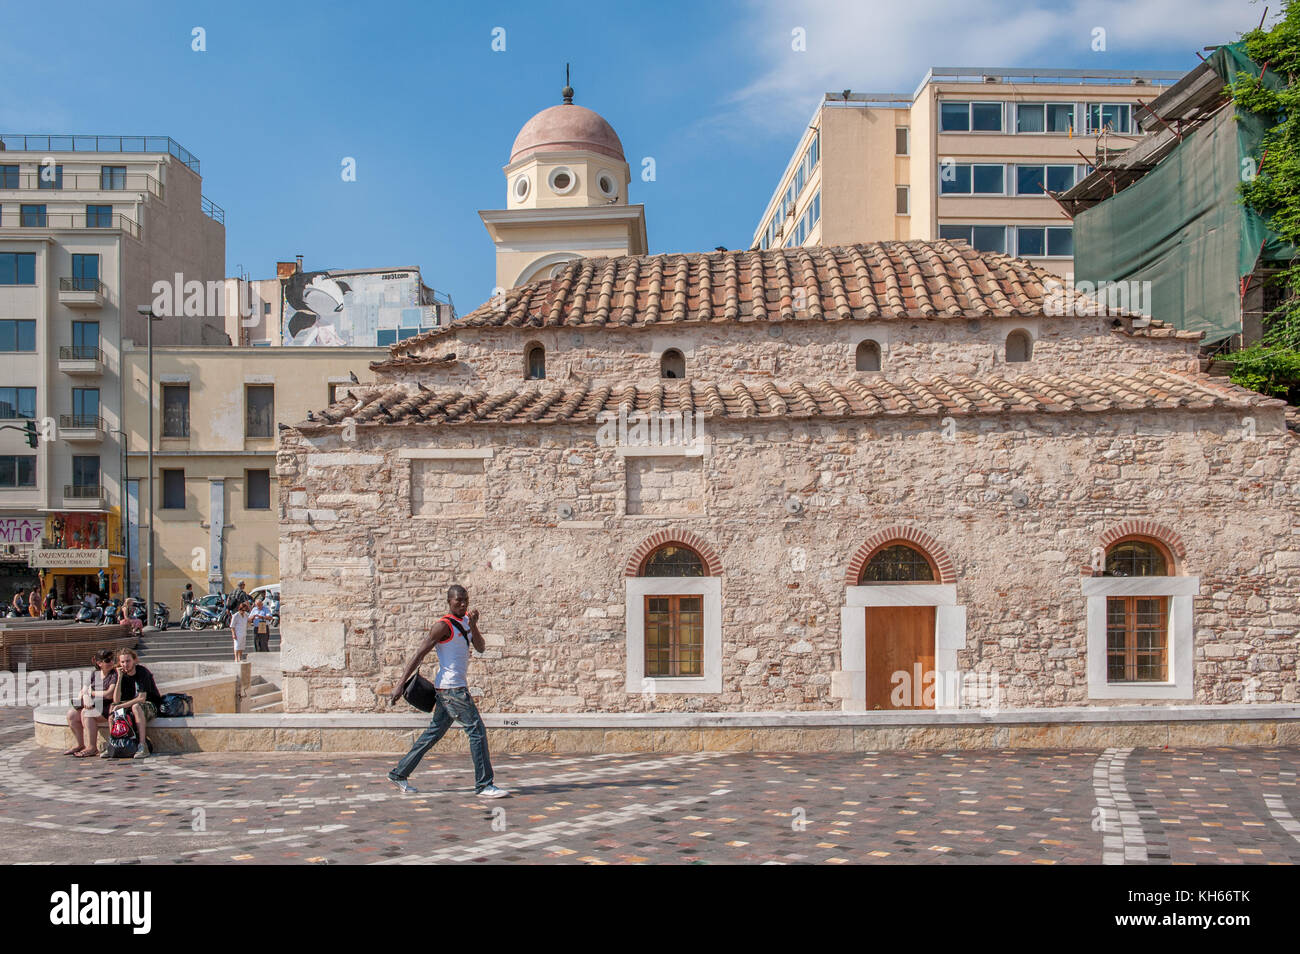 Monastiraki in the old town of Athens, Greece. This is a flea market neighborhood popular with tourists. Pantanassa - Stock Image